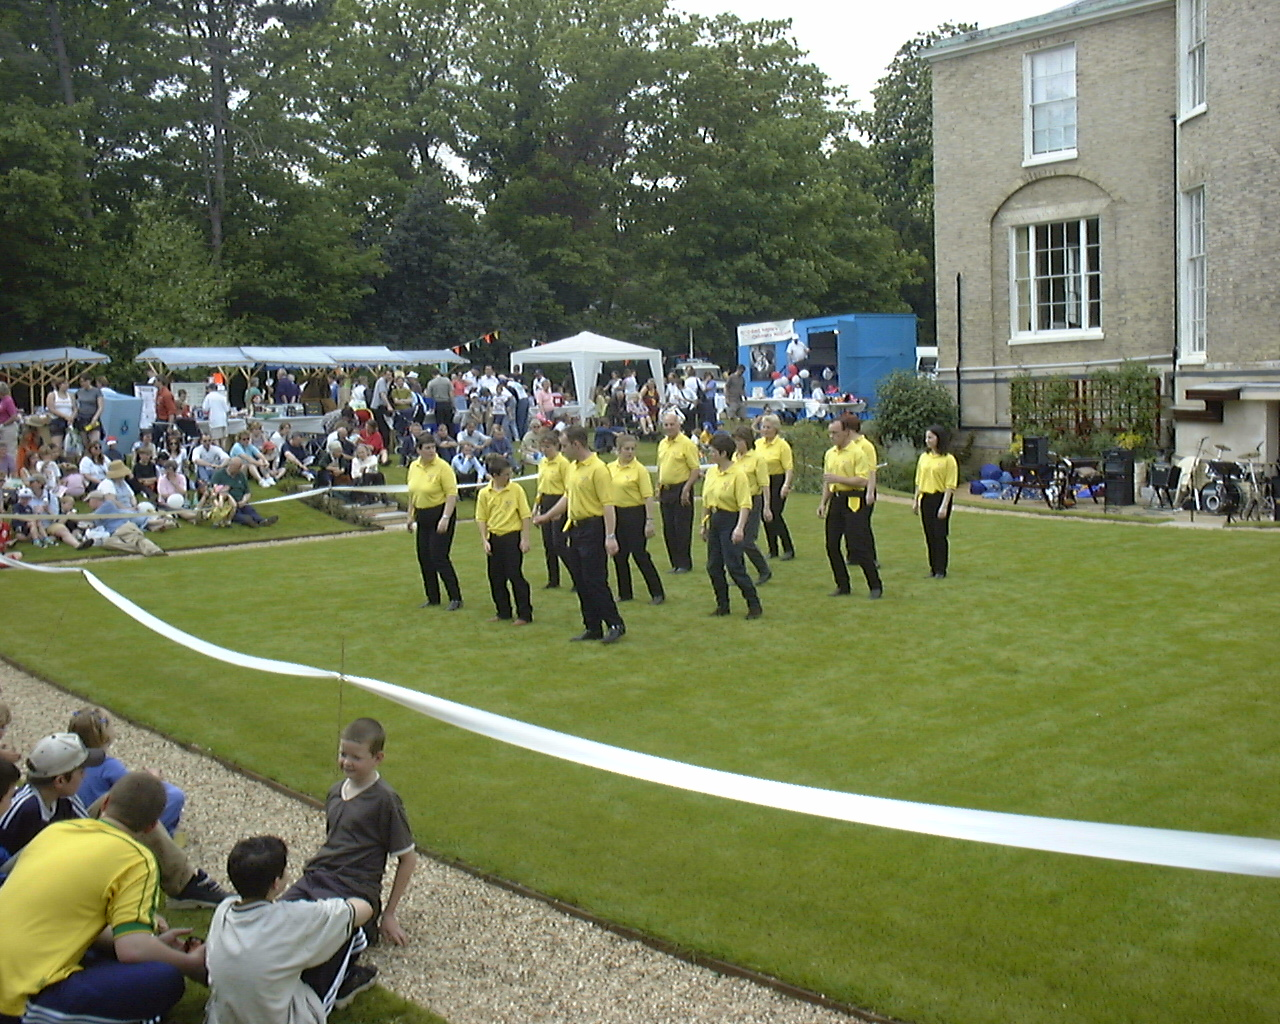 Hospice Gala day in grounds of Milton Hall